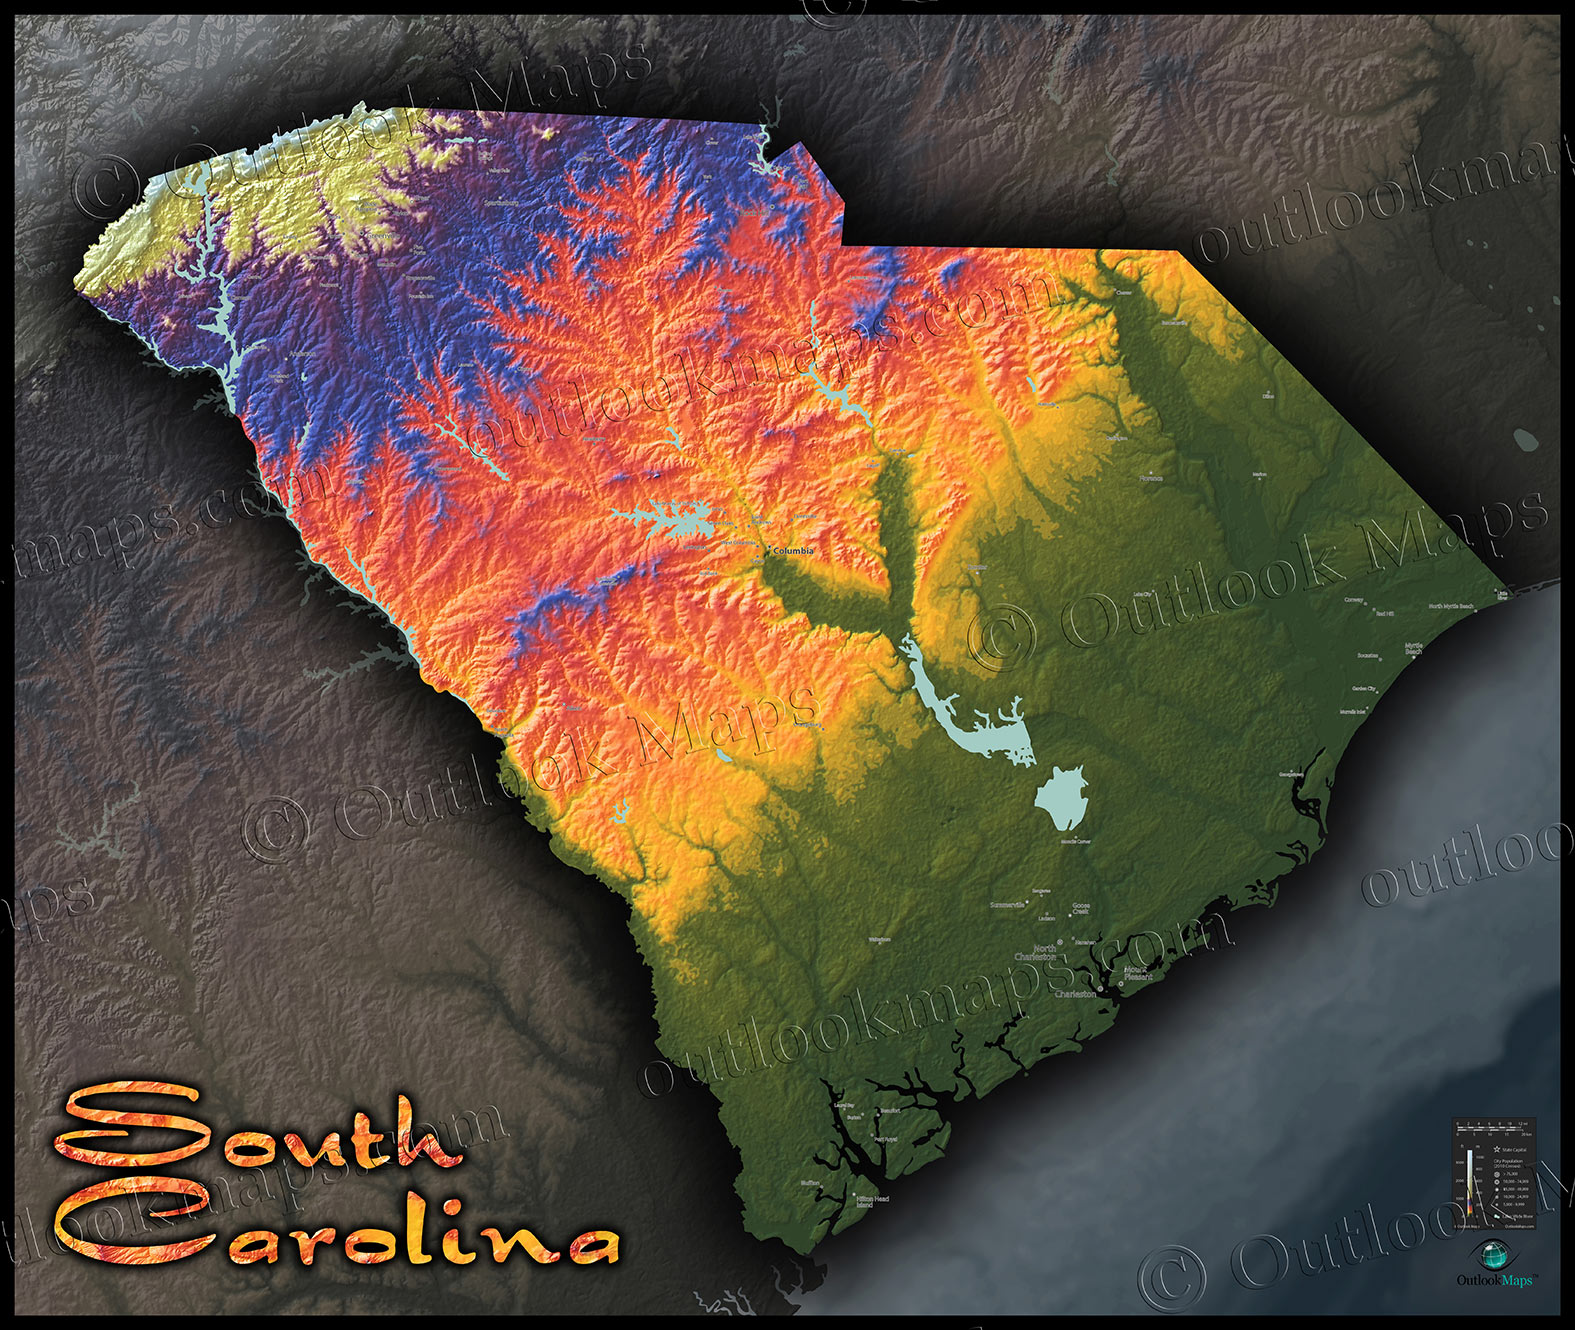 South Carolina Terrain Map | Artistic Colorful Topography